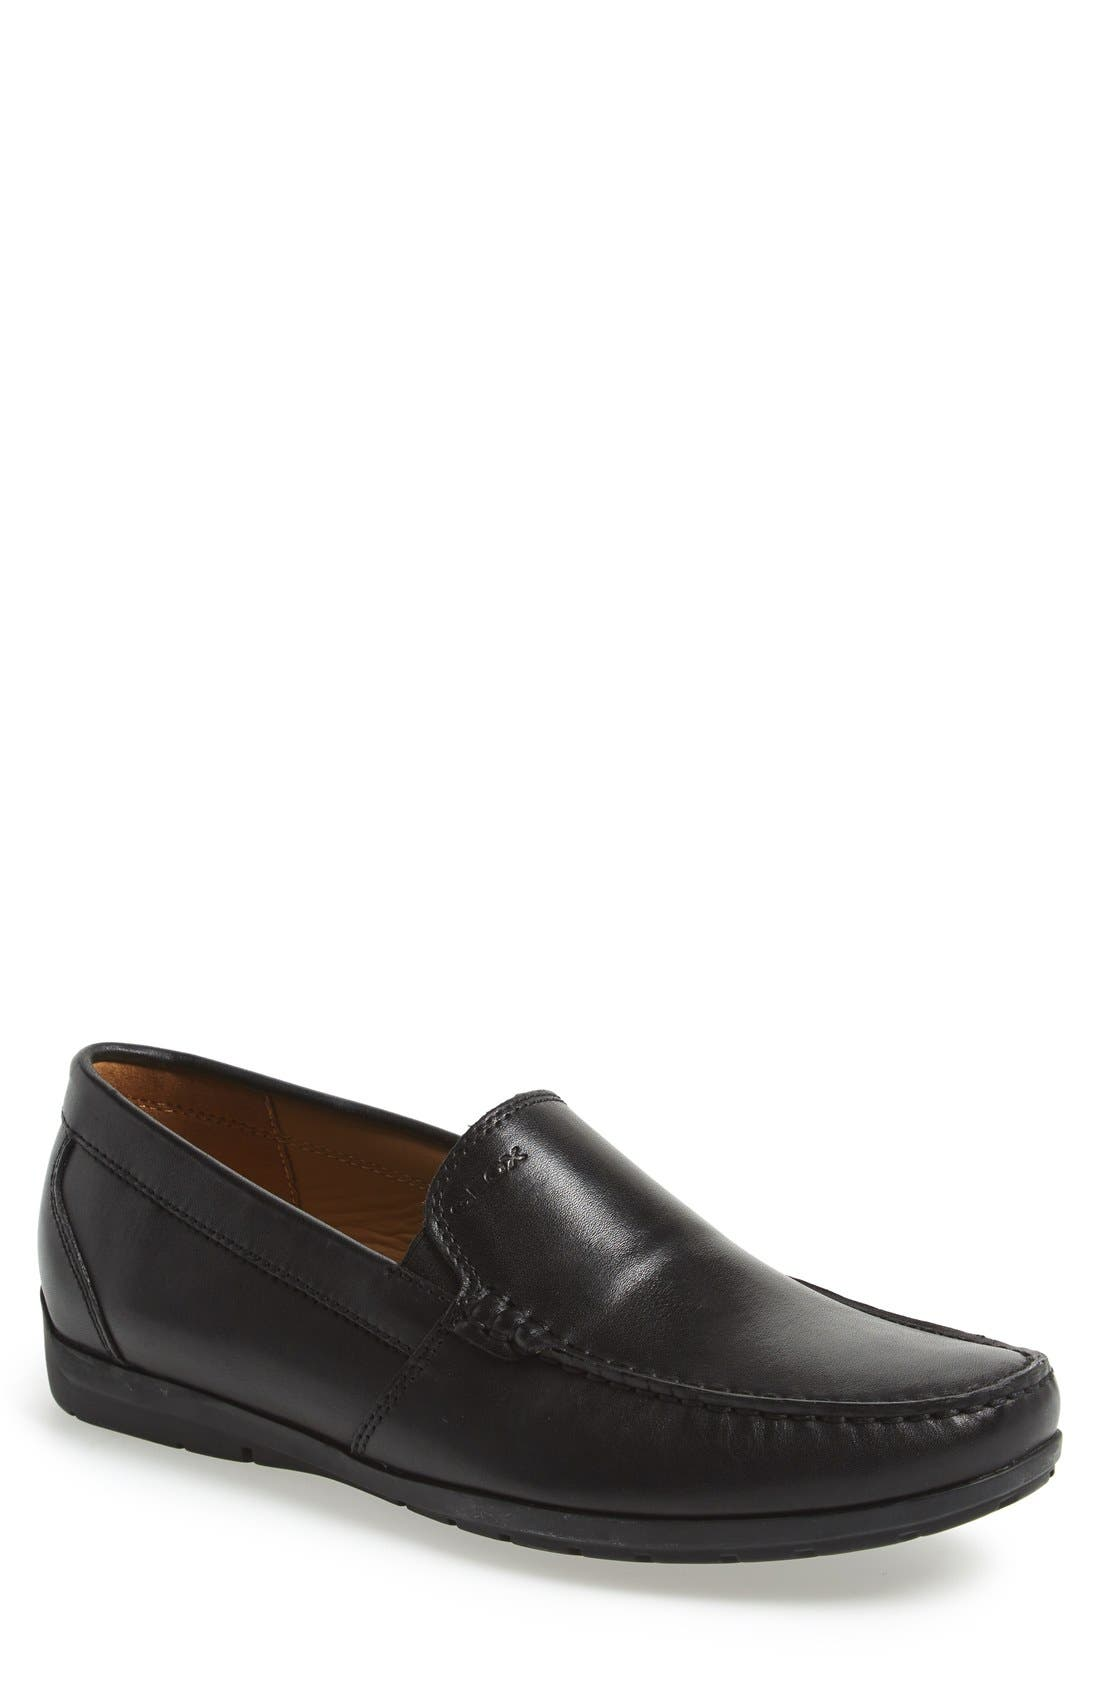 Geox 'Simon W2' Venetian Loafer (Men)